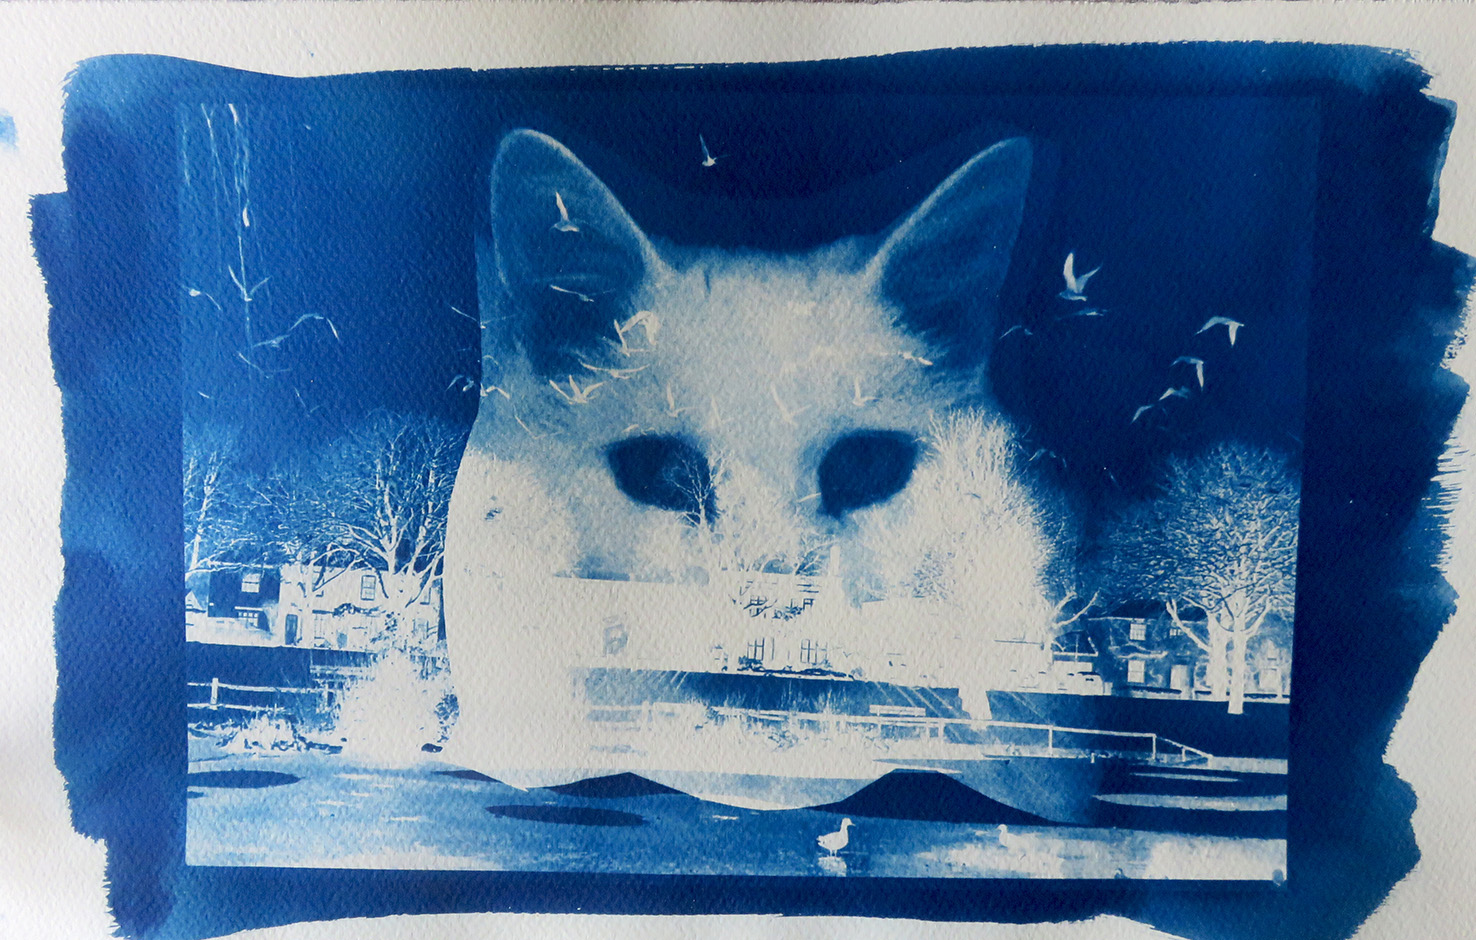 cyanotype archives